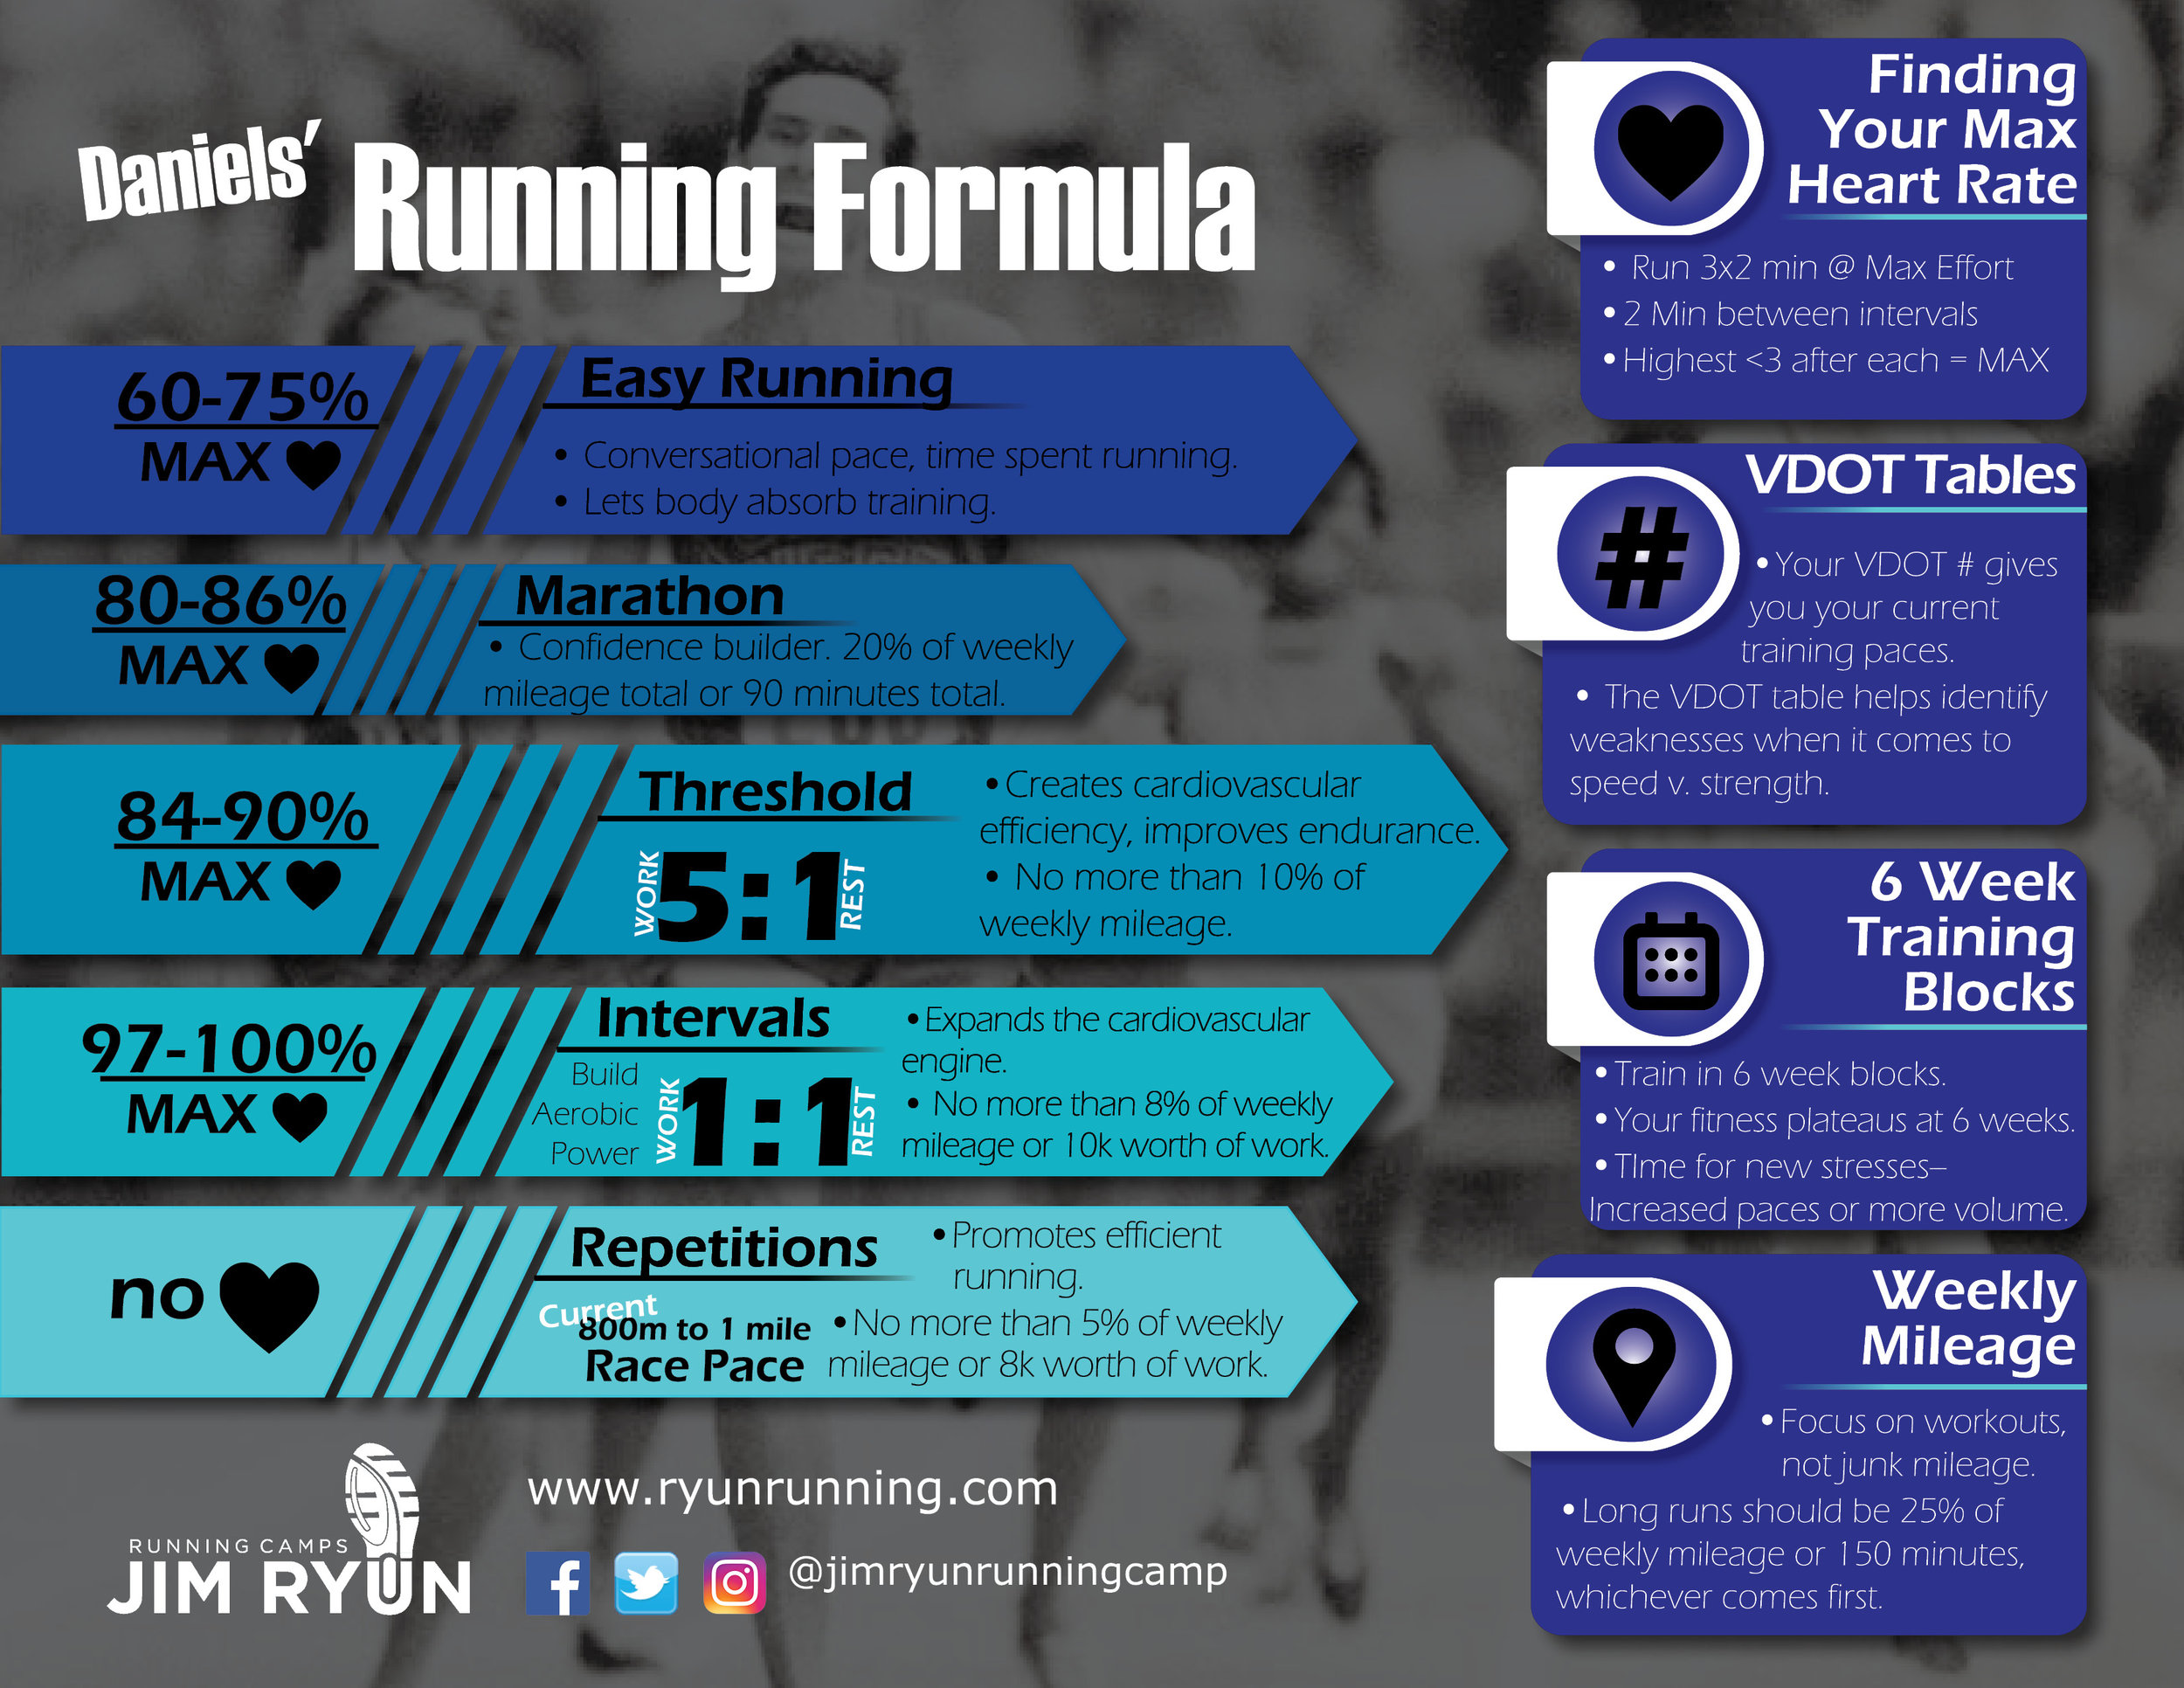 #1 Daniels' Running Formula  - The Daniels' Running Formula Infographic is the first in a series of infographic created by the Jim Ryun Running Camp.